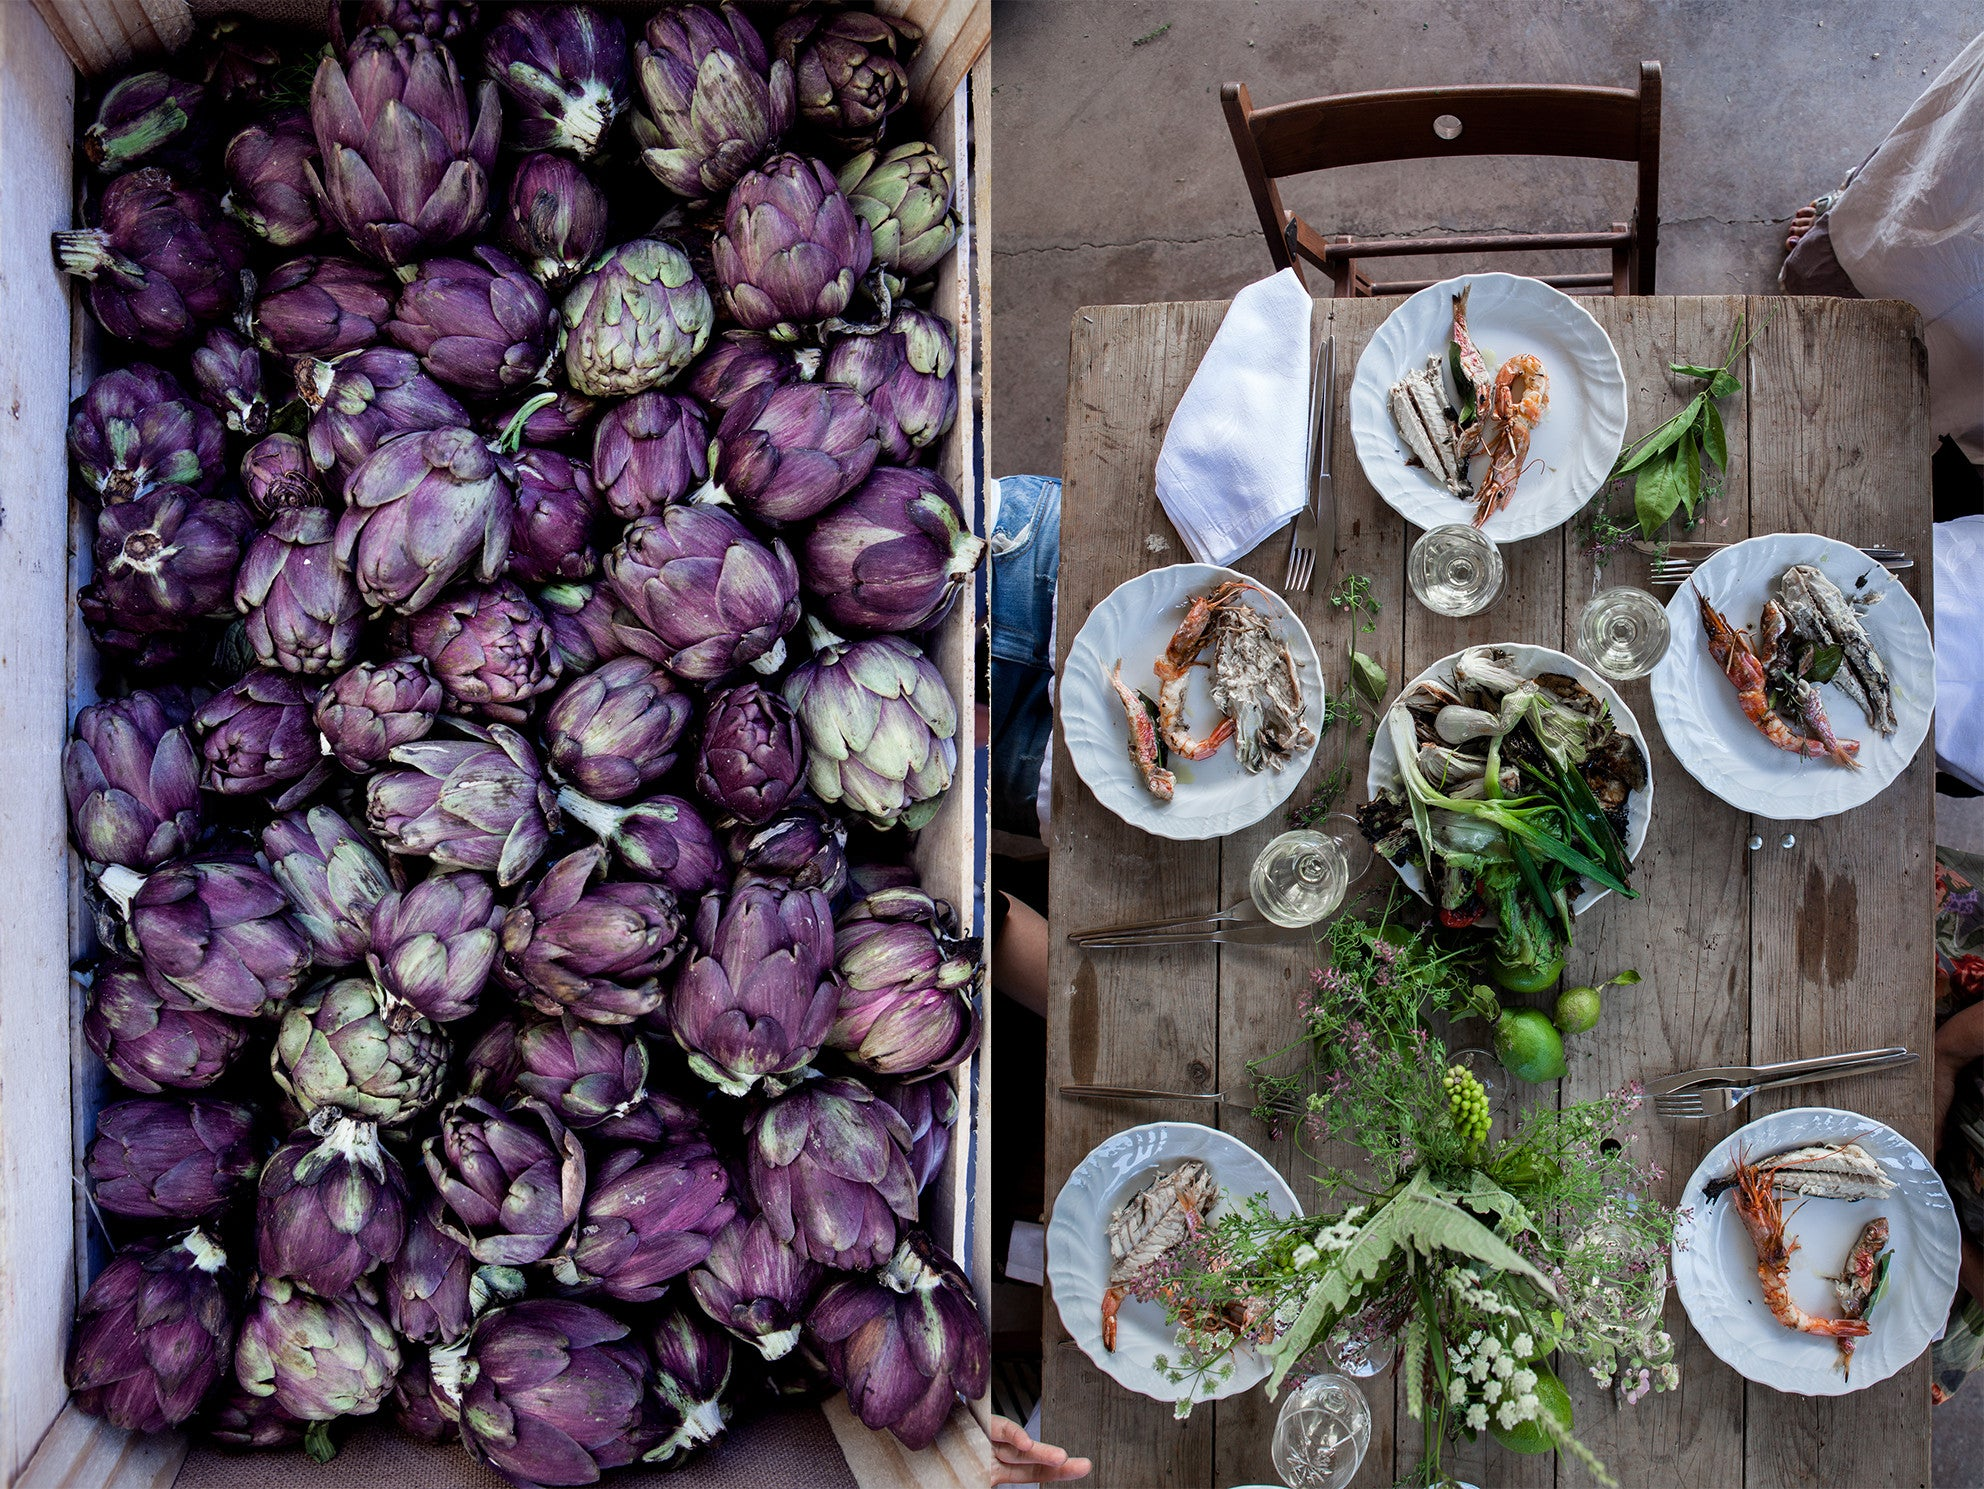 Tuscany, Italy | Cooking Local -  a healthy cooking, photography & styling retreat | July 19th-24th 2017 | SOLD OUT